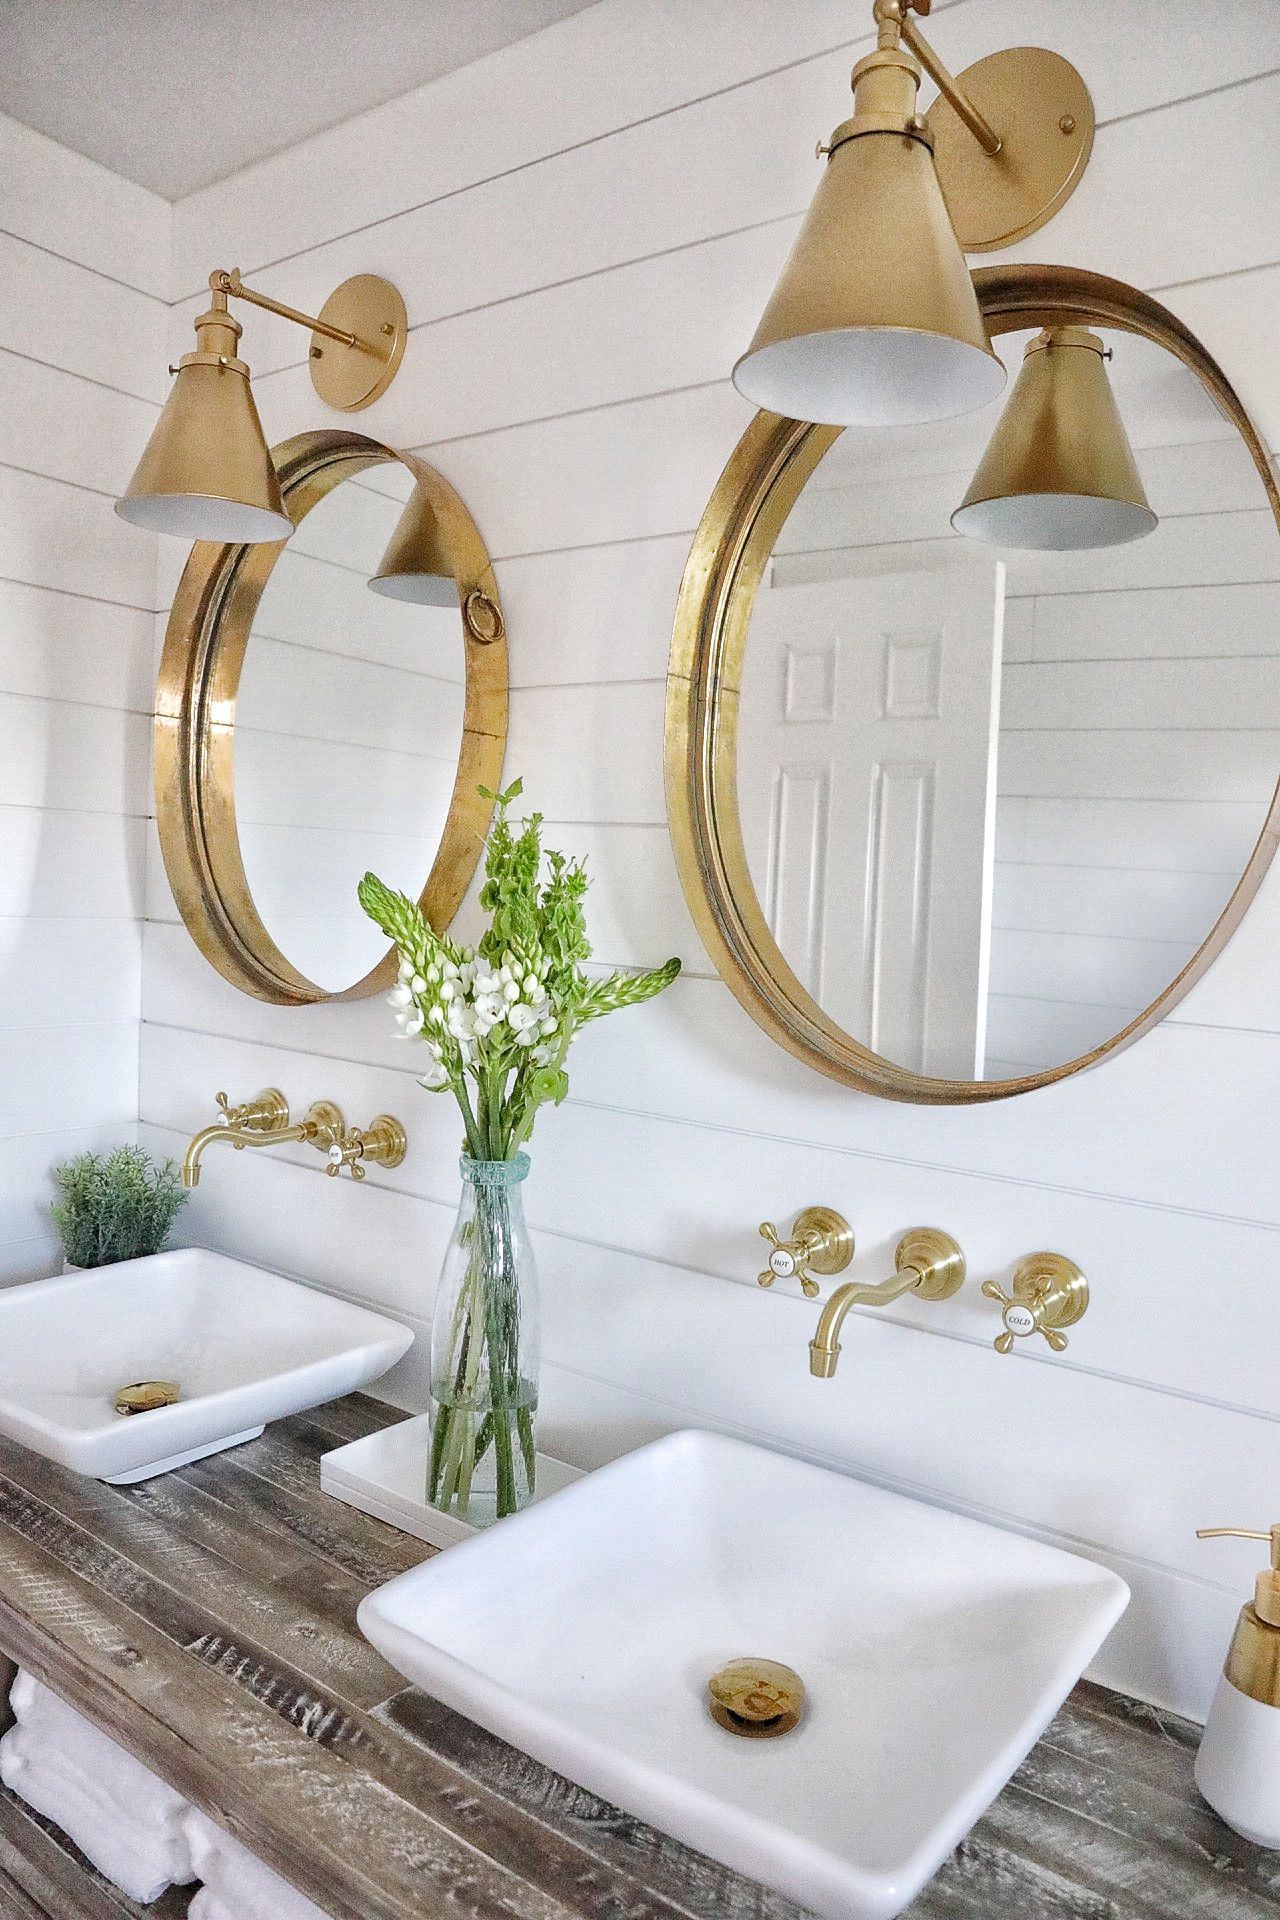 Simply Beautiful Bathrooms: 5 Ways Shiplap Can Transform Your Space